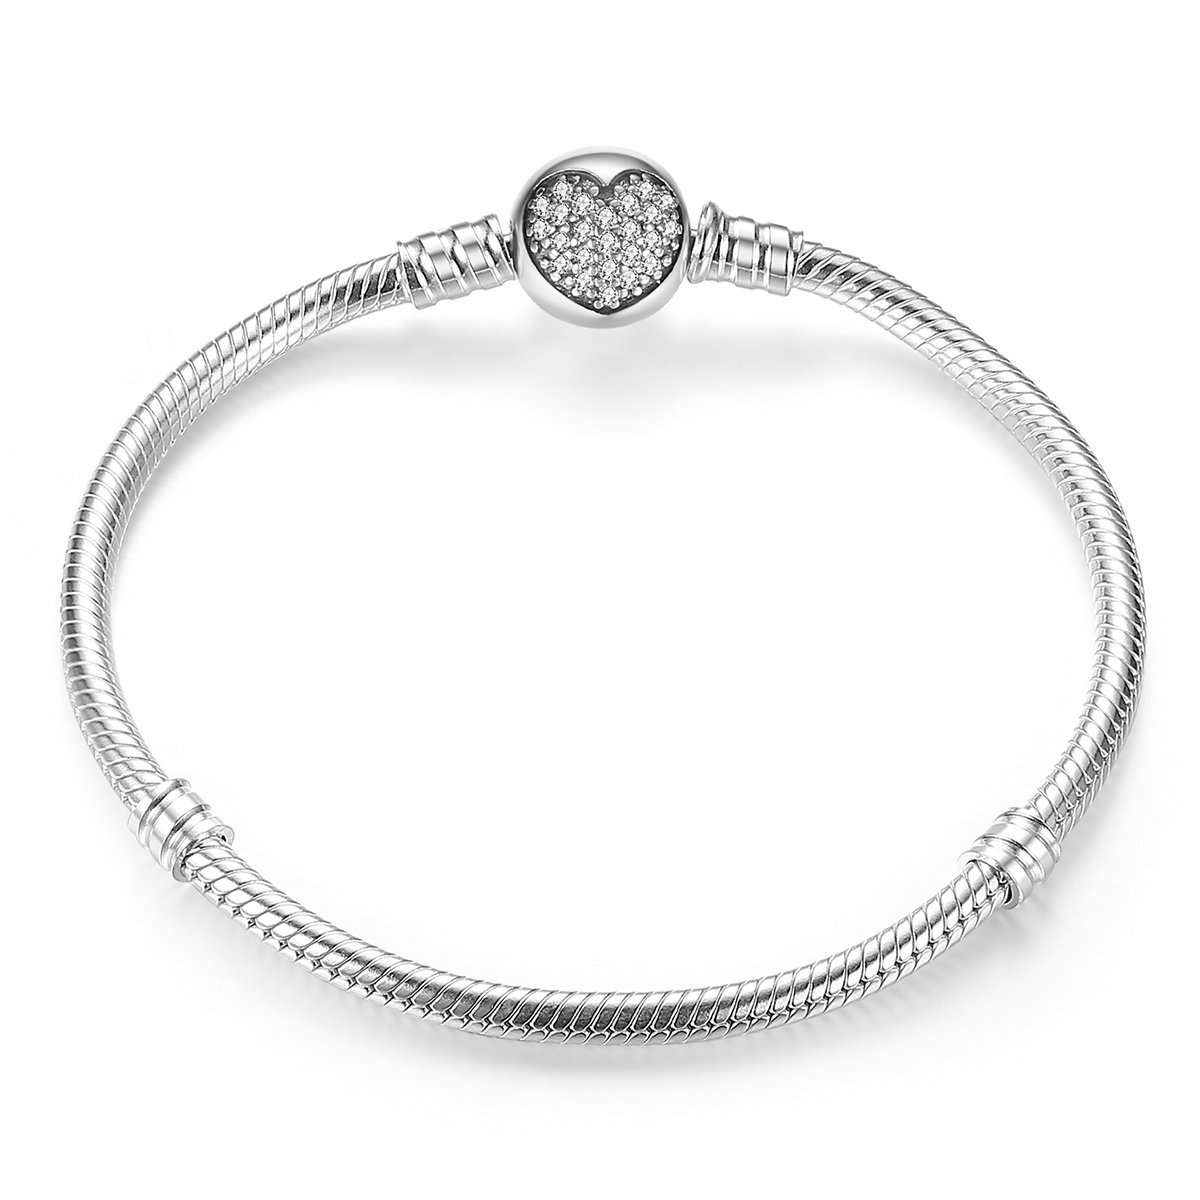 BAMOER New Arrival 925 Sterling Silver Dazzling Heart Clasp Bracelet for Bridals Best Wedding Jewelry